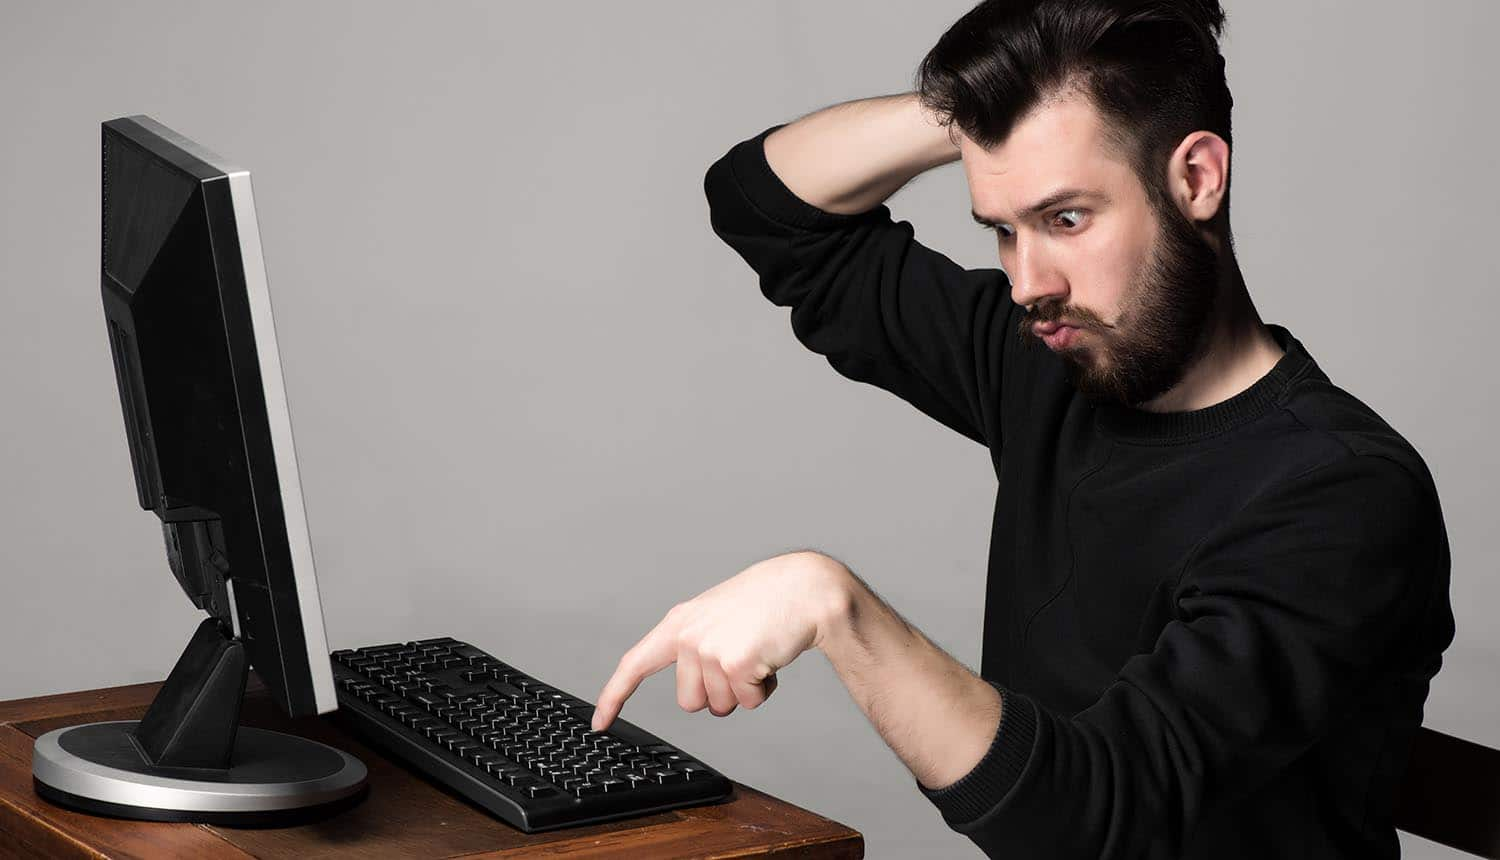 Image of confused man sitting in front of computer about to type signifying insider threats within the organization